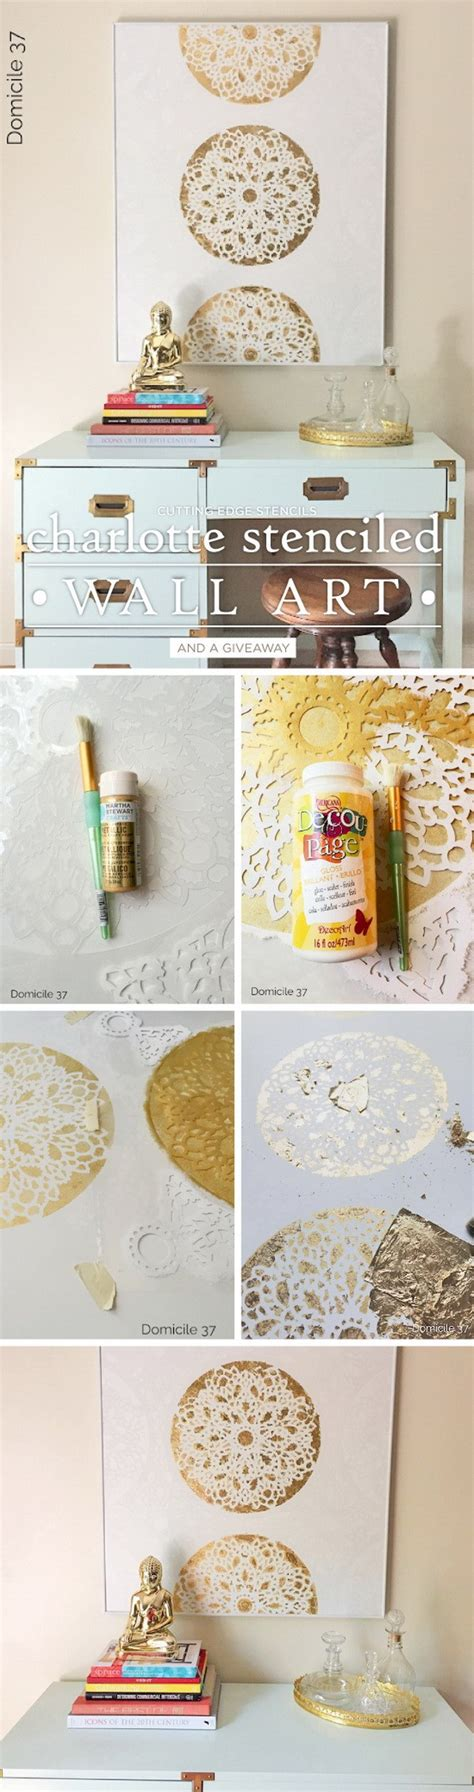 25 stunning diy wall ideas tutorials for creative